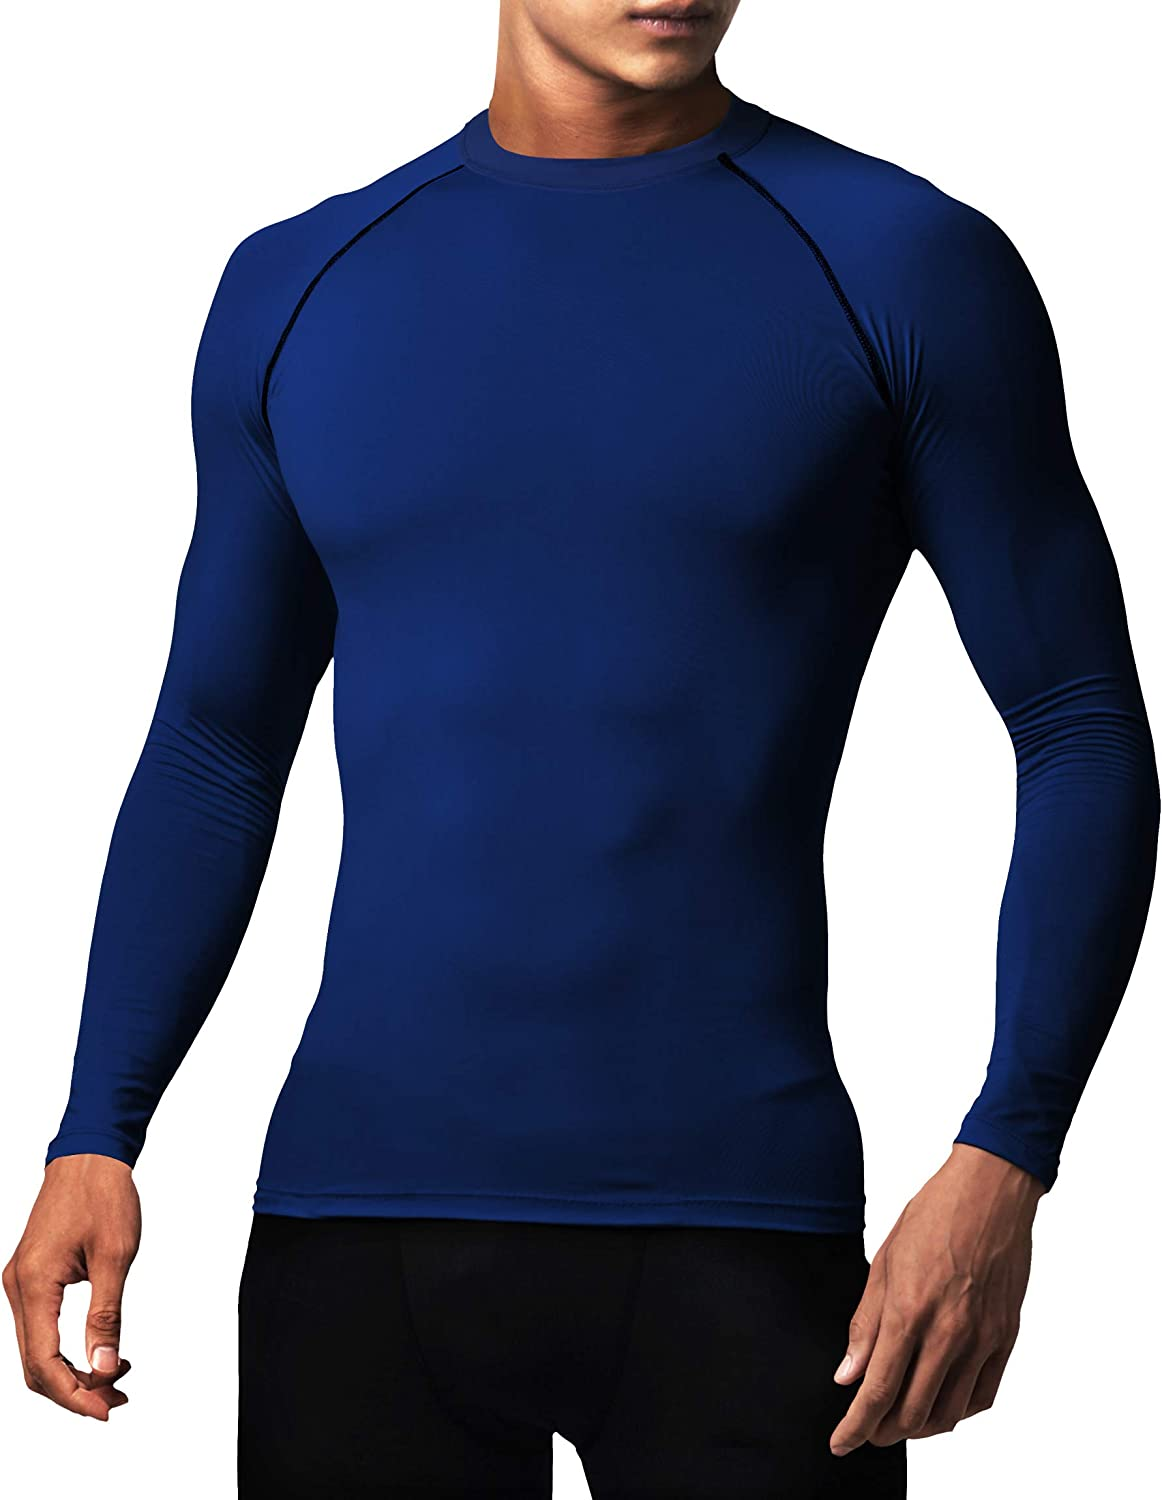 Defender Men's Quick Dry Compression Baselayer Underlayer Top Long Sleeve T-Shirt